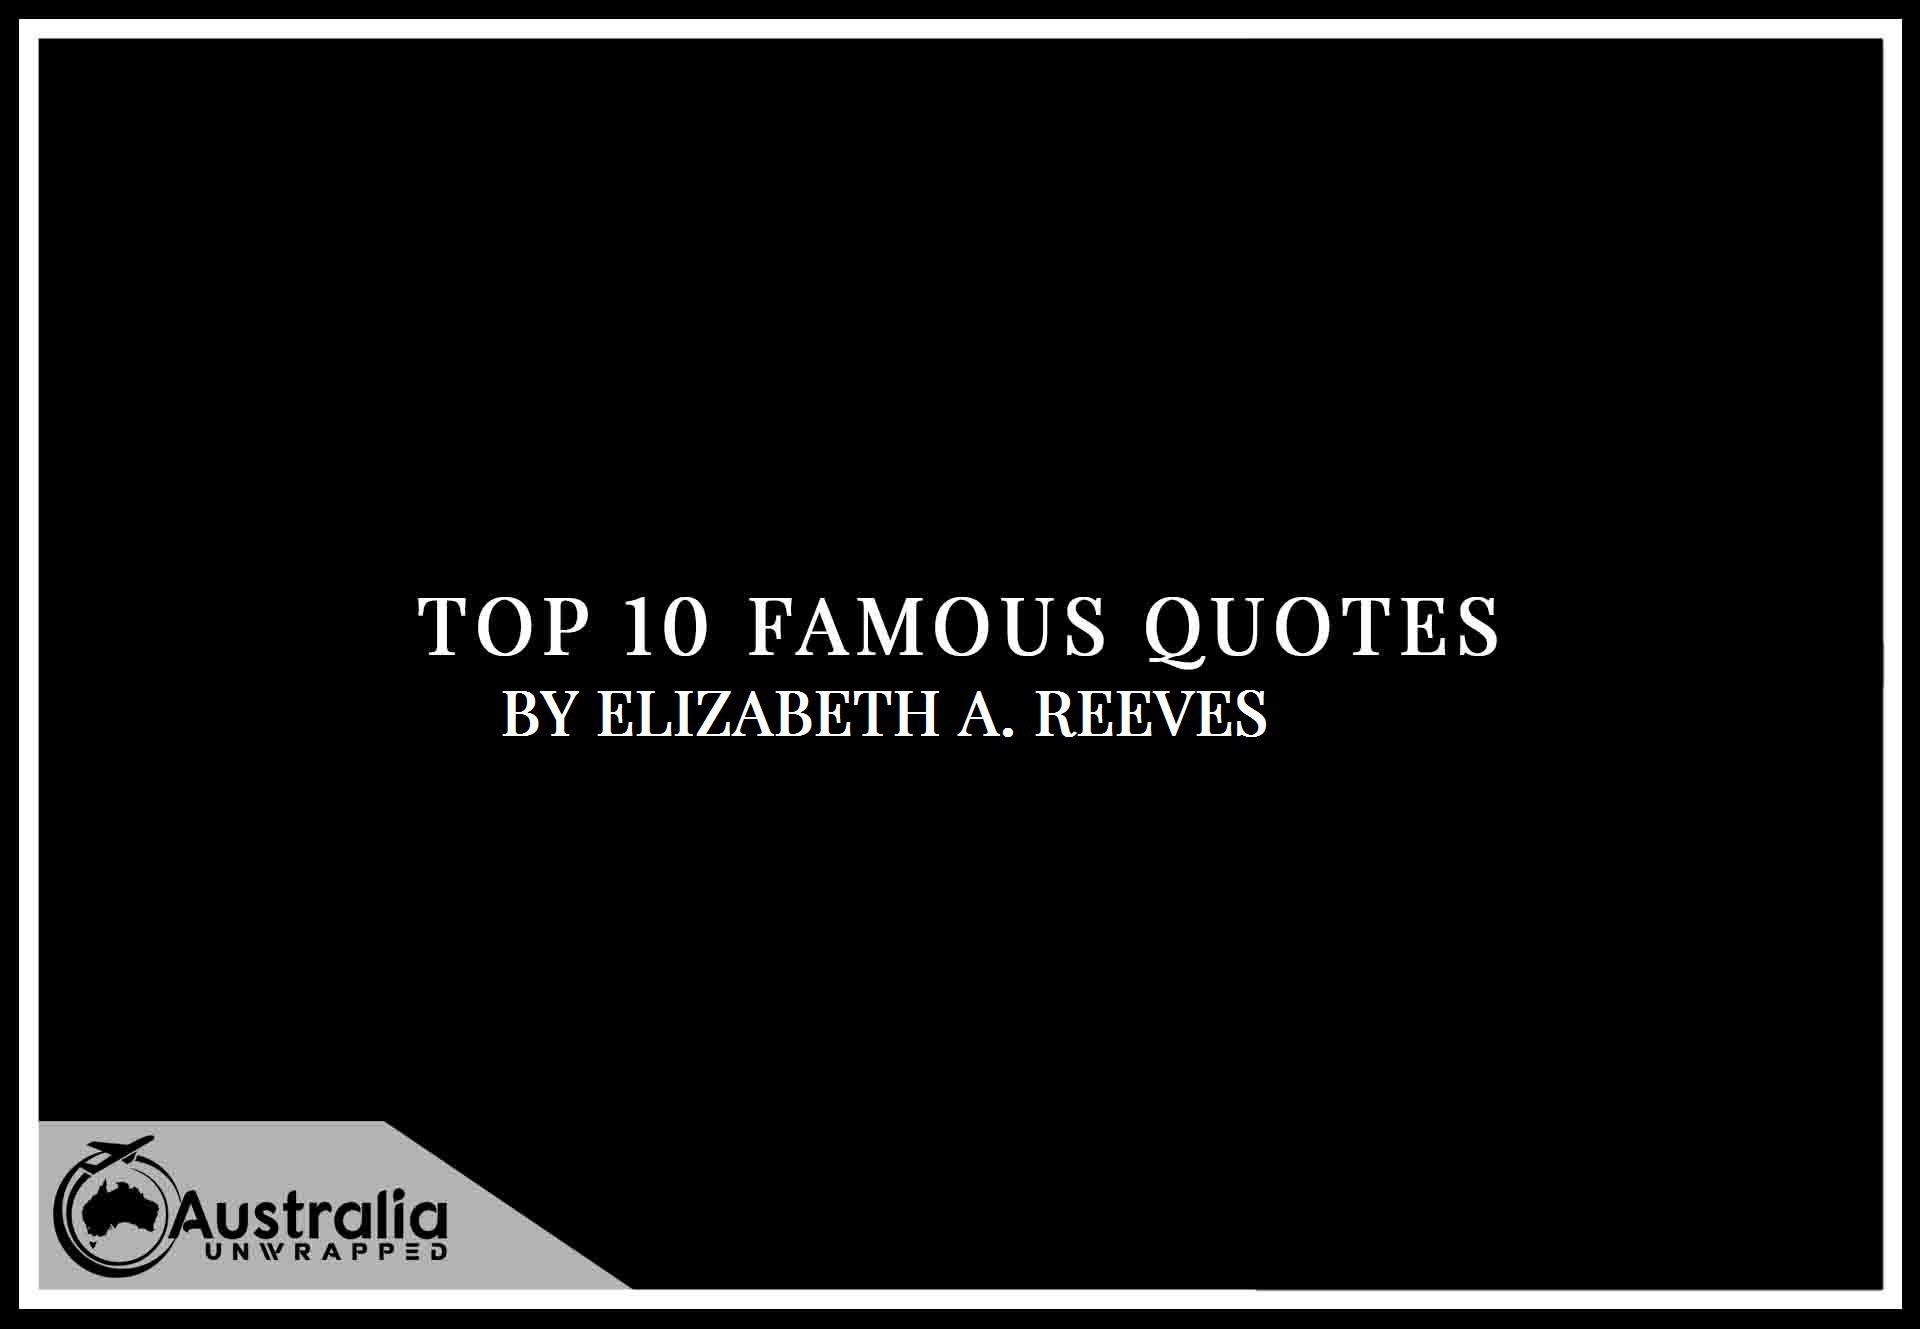 Elizabeth A. Reeves's Top 10 Popular and Famous Quotes